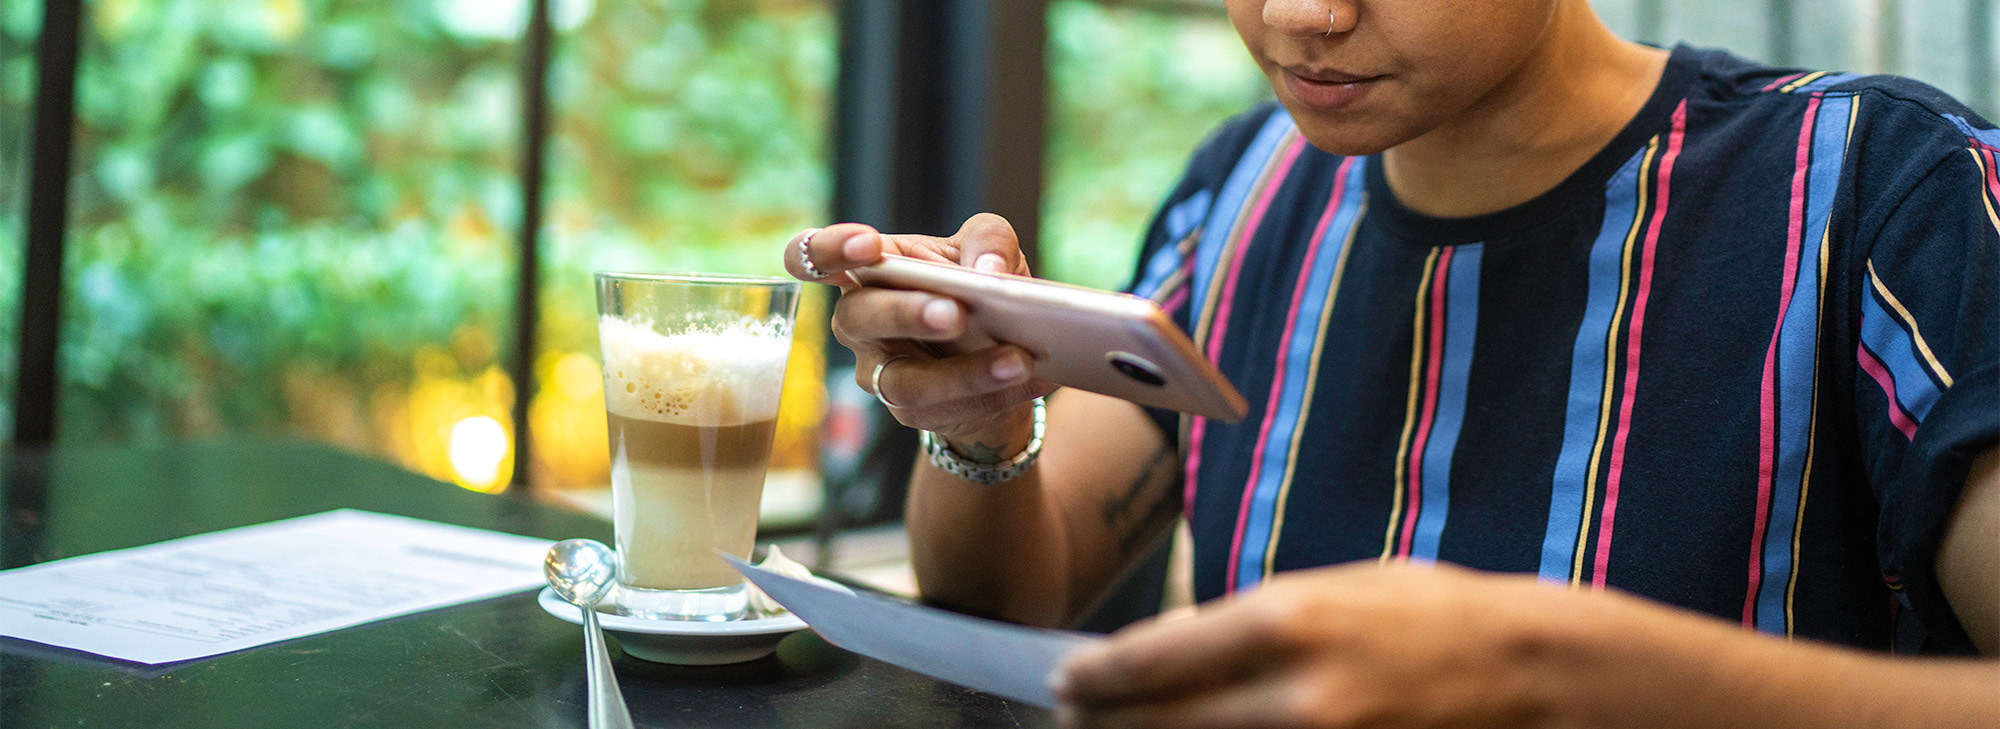 woman in cafe using mobile remote deposit financial banking